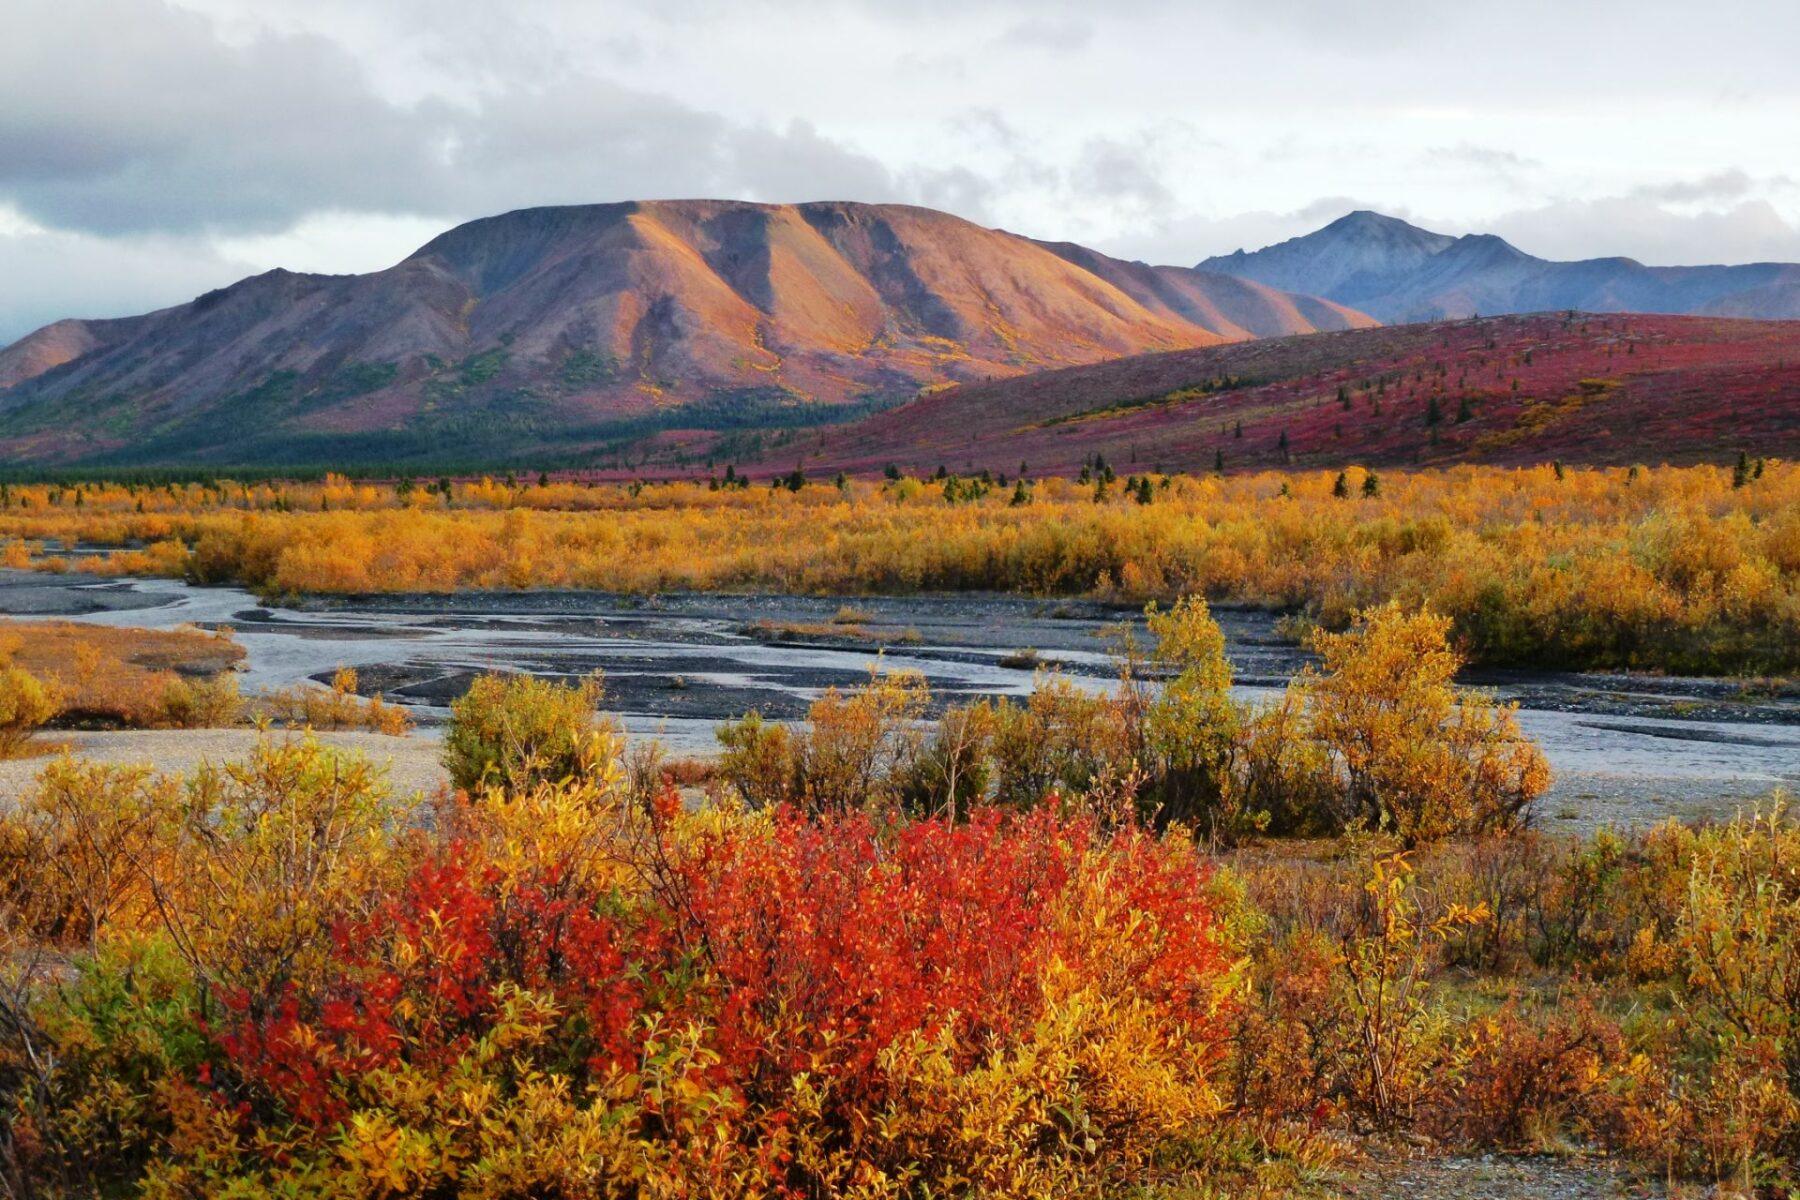 A river at sunset flows through golden and red fall color shrubs with distant mountains in Denali National Park. Denali is a part of an Alaska itinerary